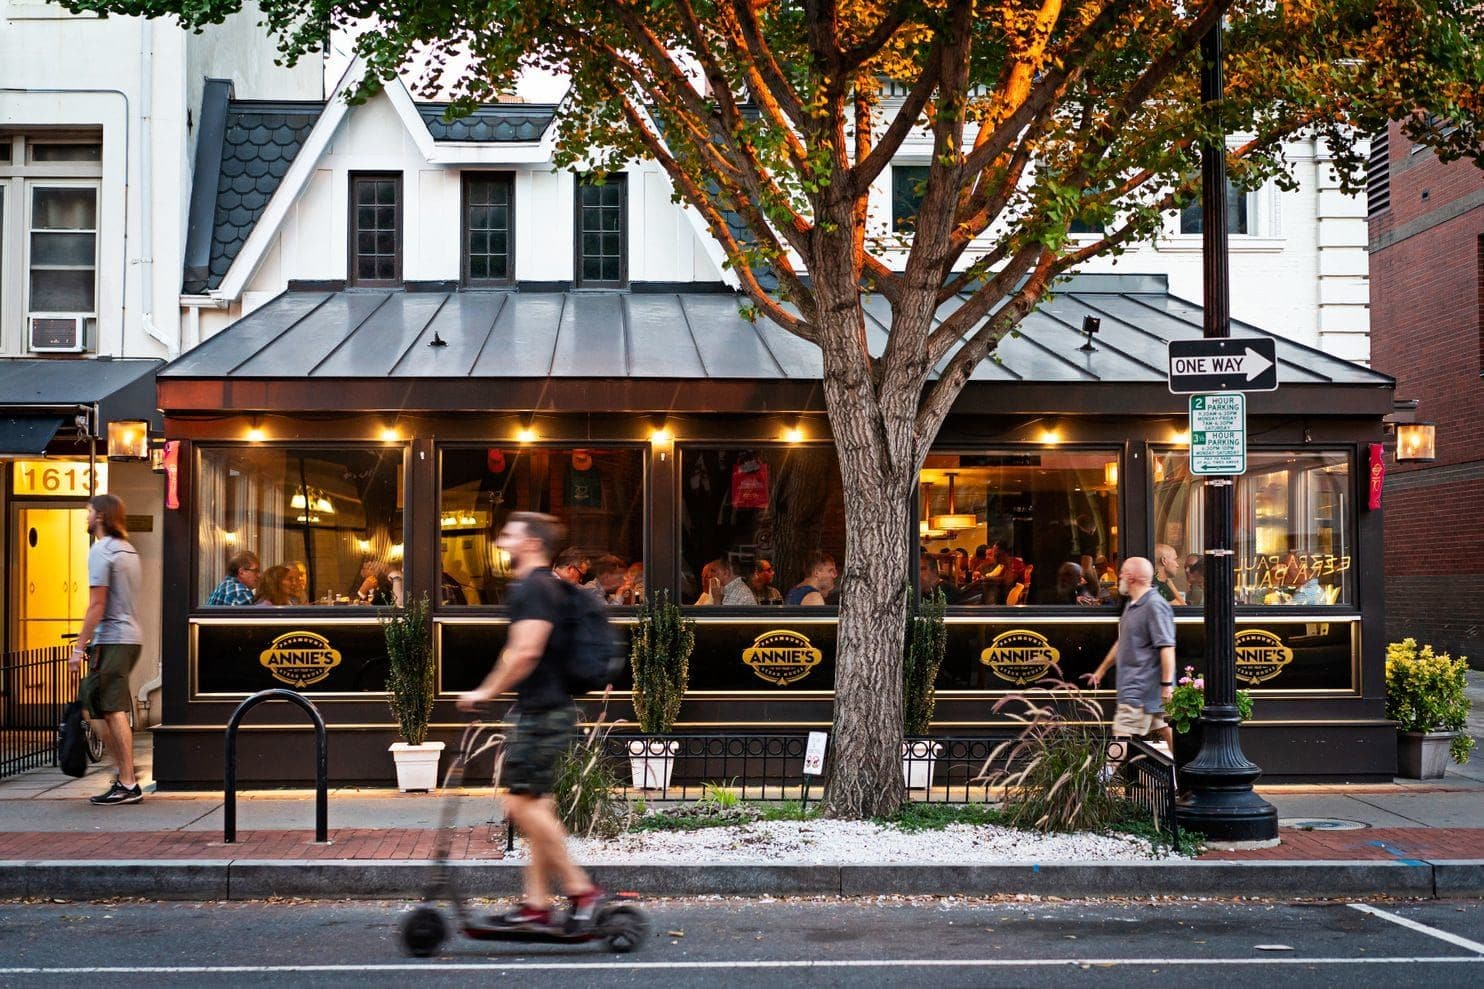 Annie's Paramount Steakhouse, long a haven for D.C.'s gay community, wins a James Beard Classics Award - Washington Post, January 2019